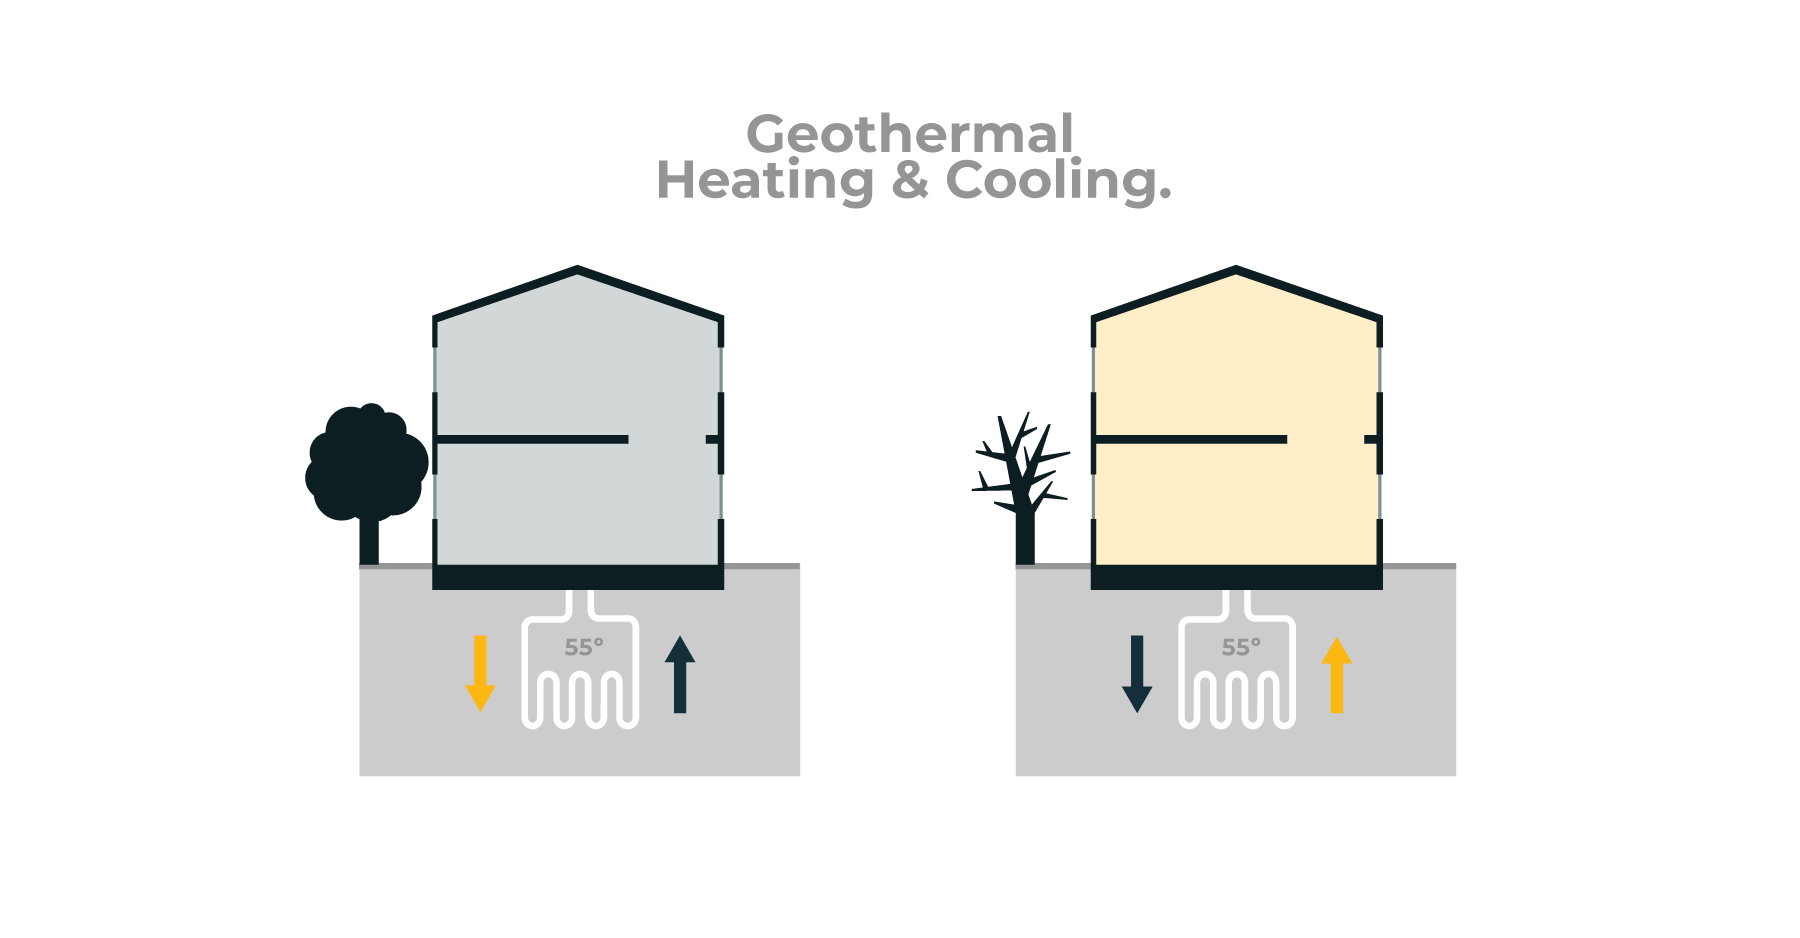 Sustainability benefits and costs of geothermal heating and cooling in modular home construction